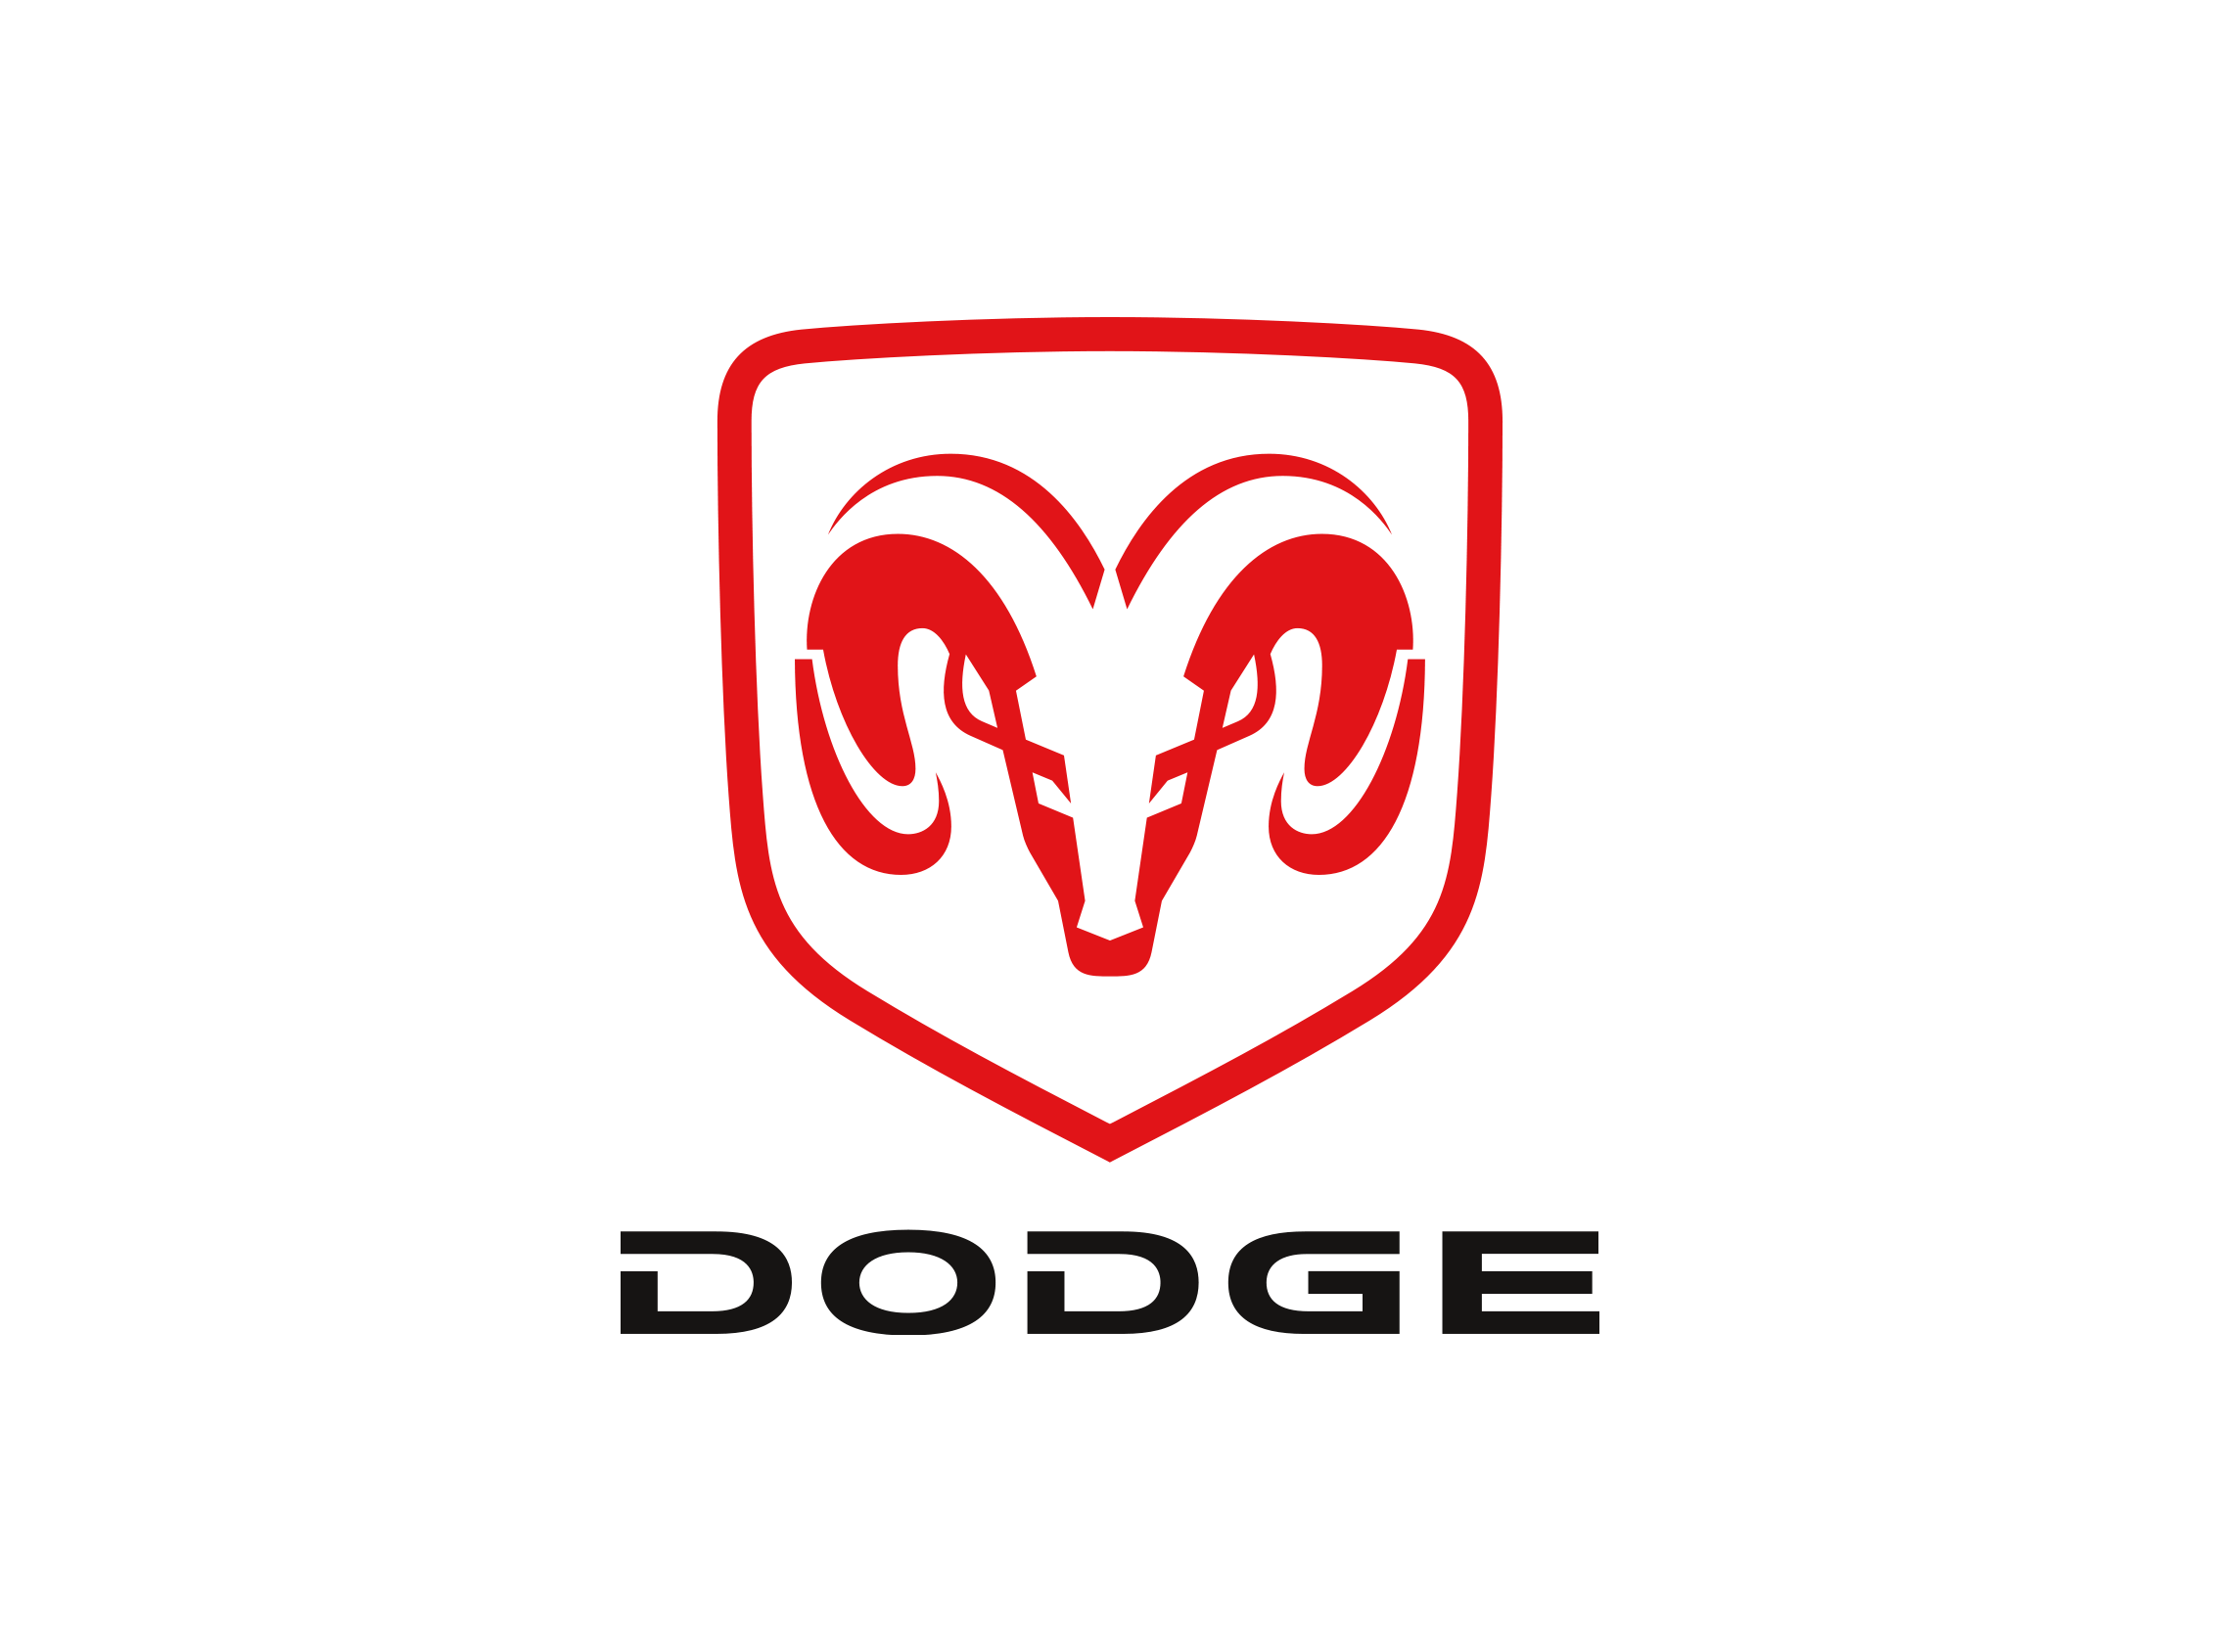 DODGE MOTOR IMPORT BRANDS VOITURE IMPORT USA MIAMI IMPORT VOITURE EUROP IMPORT USA MOTOR IMPORT7 - Audi importation voiture des Etats Unis, dubai et du japon votre mandataire automobile usa import Audi etats unis